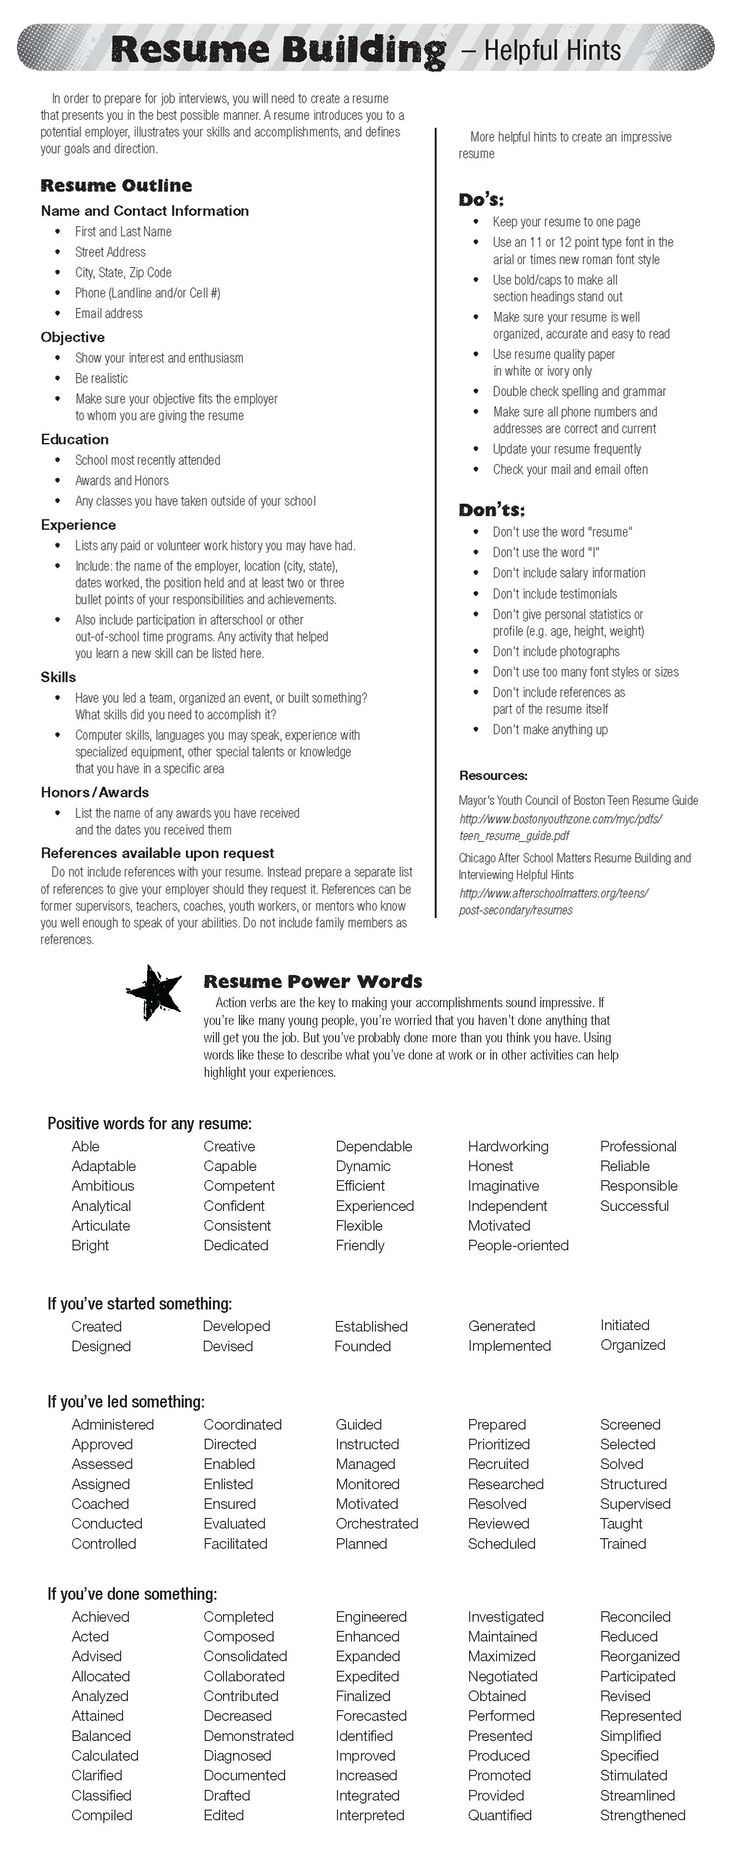 Opposenewapstandardsus  Scenic  Ideas About Resume On Pinterest  Cv Format Resume Cv And  With Marvelous  Ideas About Resume On Pinterest  Cv Format Resume Cv And Resume Templates With Divine Actors Resume Also Resume For Graduate School In Addition Graduate School Resume And Computer Skills For Resume As Well As Design Resume Additionally Resume For Customer Service From Pinterestcom With Opposenewapstandardsus  Marvelous  Ideas About Resume On Pinterest  Cv Format Resume Cv And  With Divine  Ideas About Resume On Pinterest  Cv Format Resume Cv And Resume Templates And Scenic Actors Resume Also Resume For Graduate School In Addition Graduate School Resume From Pinterestcom